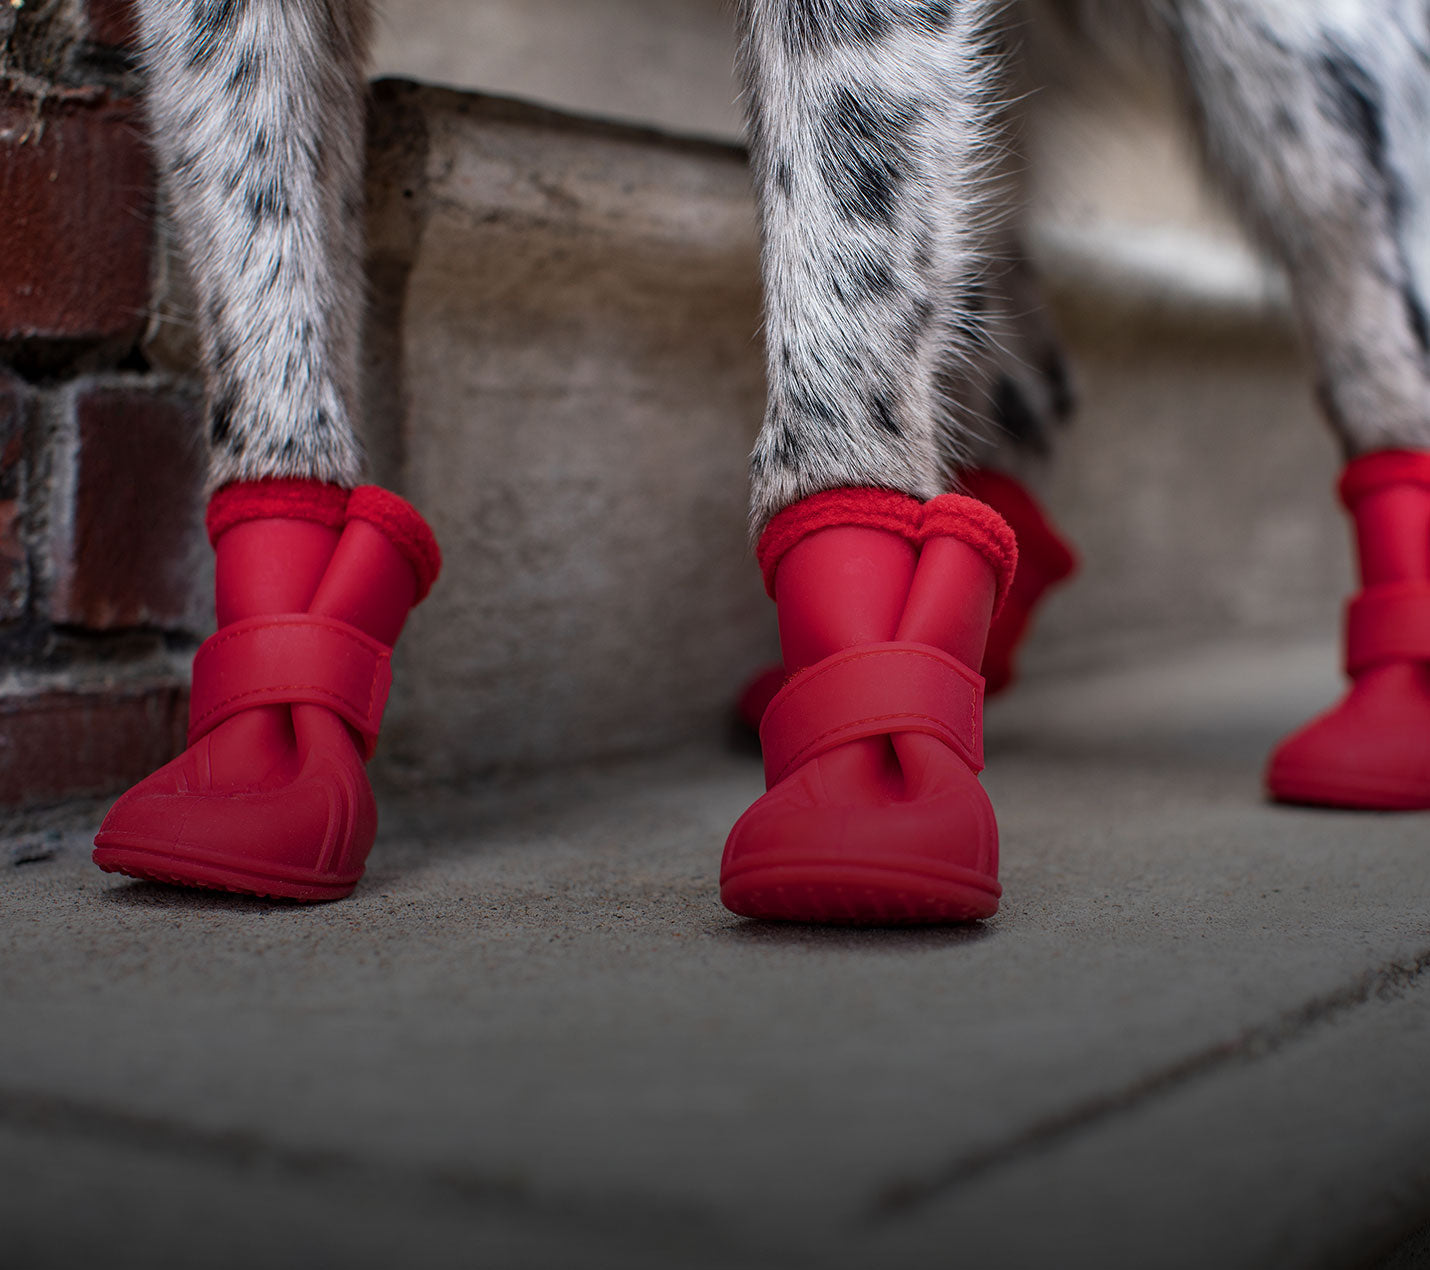 Dog wearing red winter dog boots